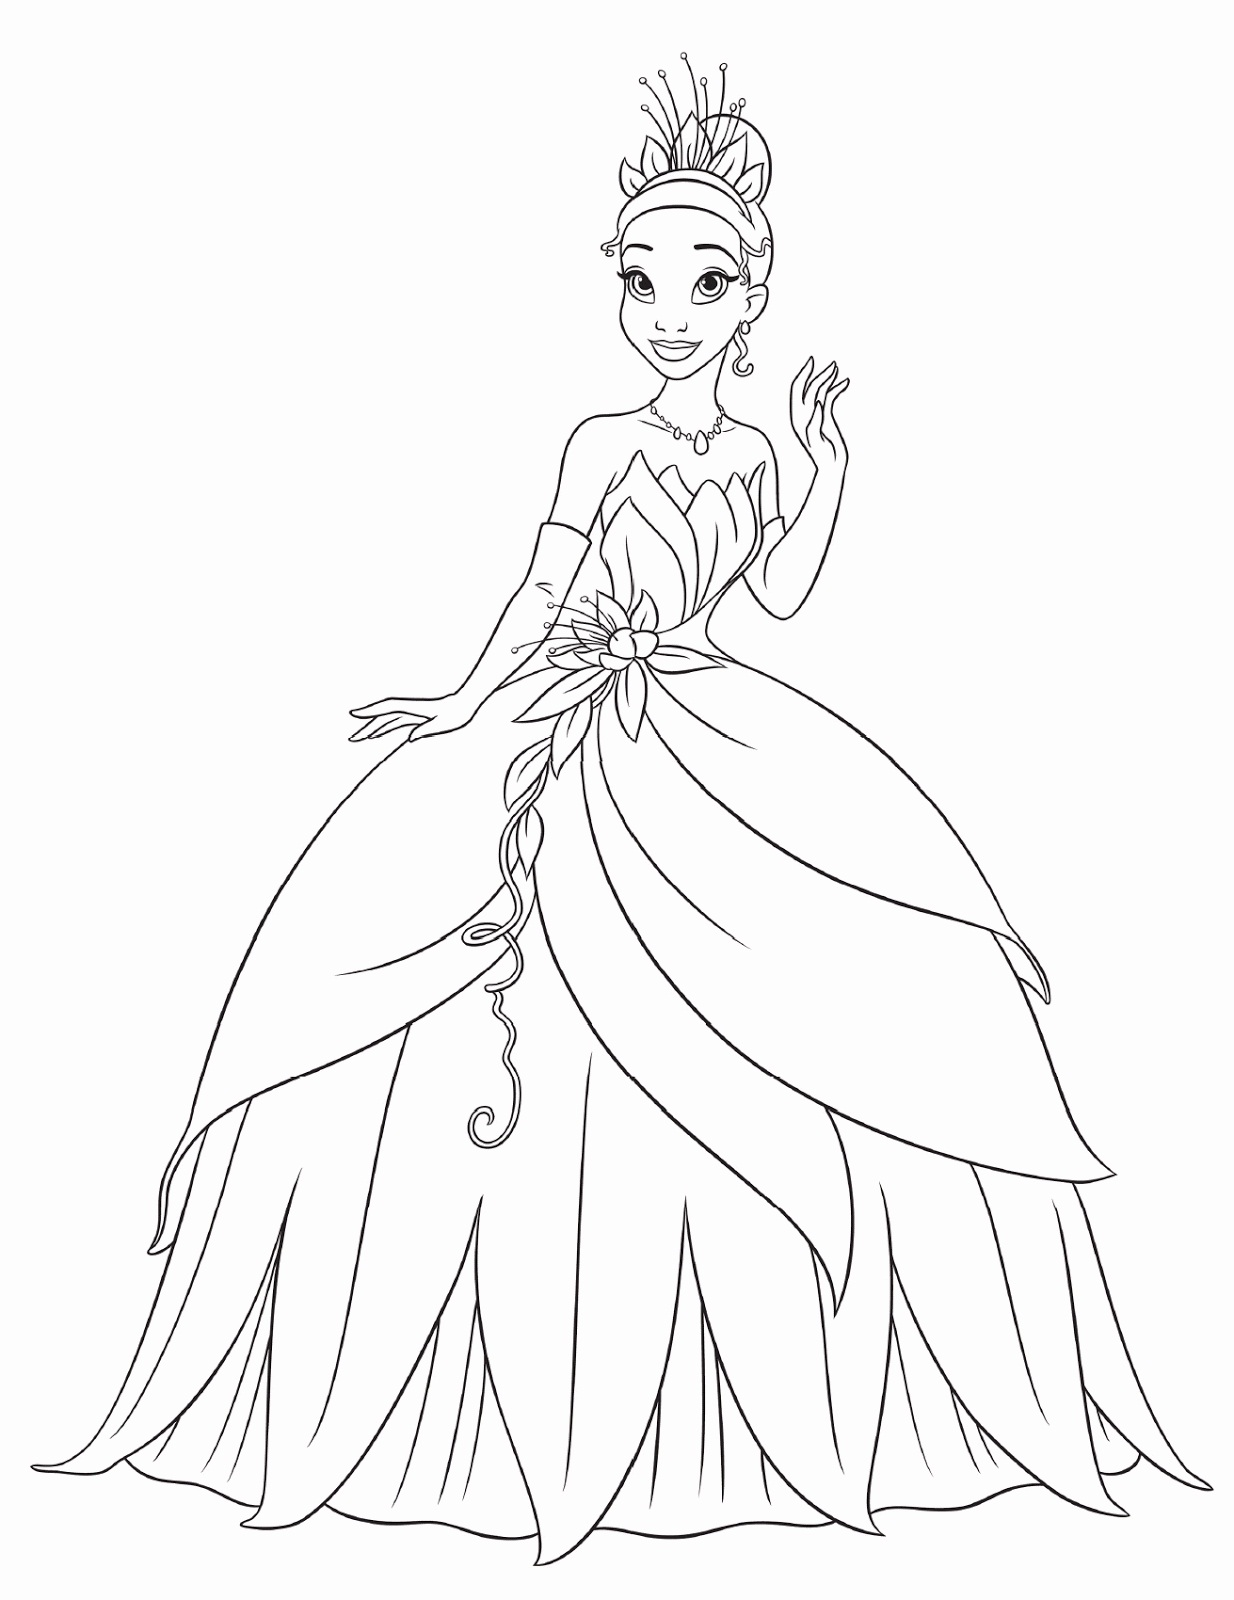 Free Coloring Pages Of Princess Gowns Free Princess Coloring Pages Printable